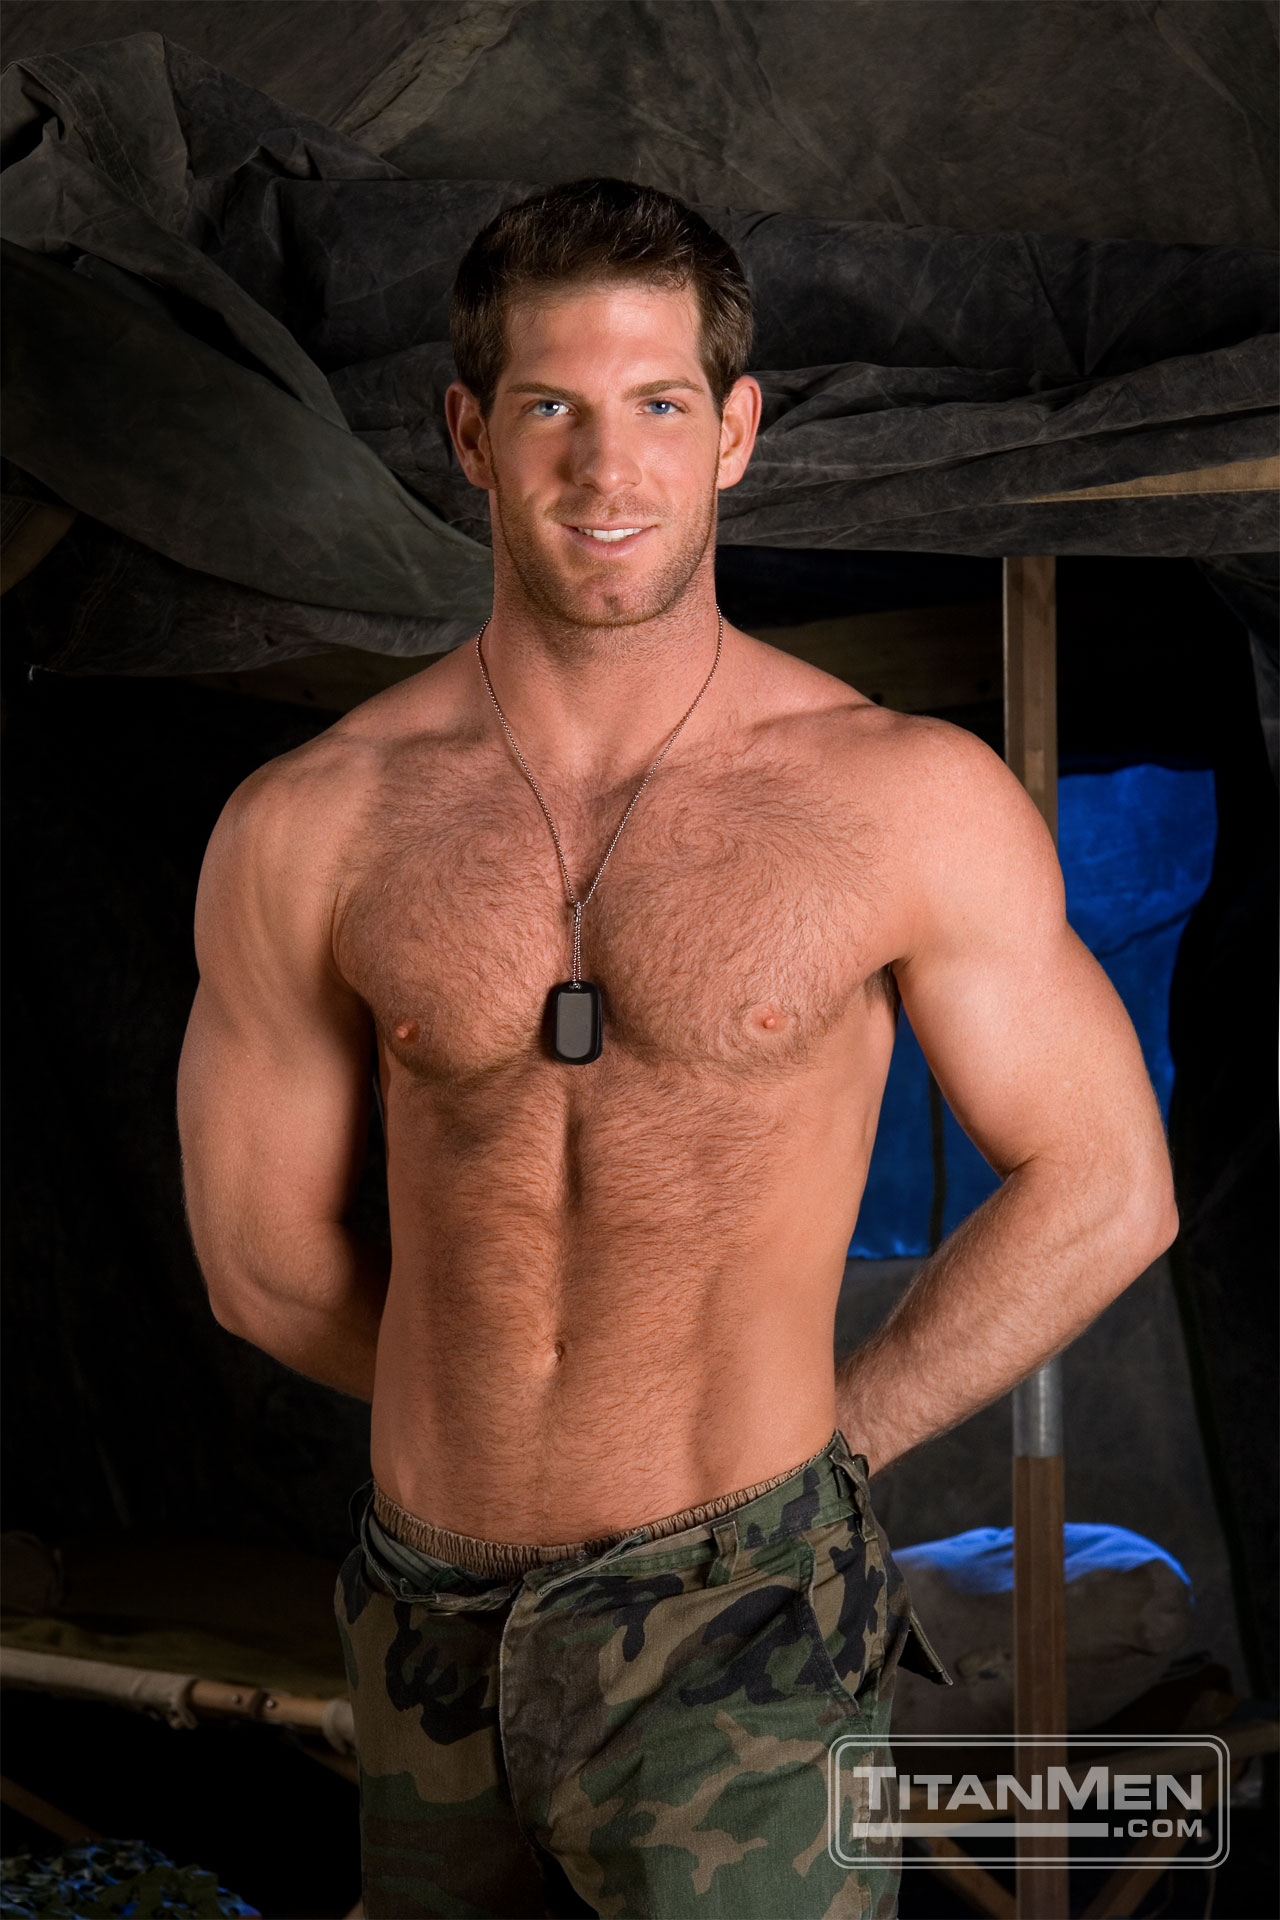 from Terry photos of gay soldier